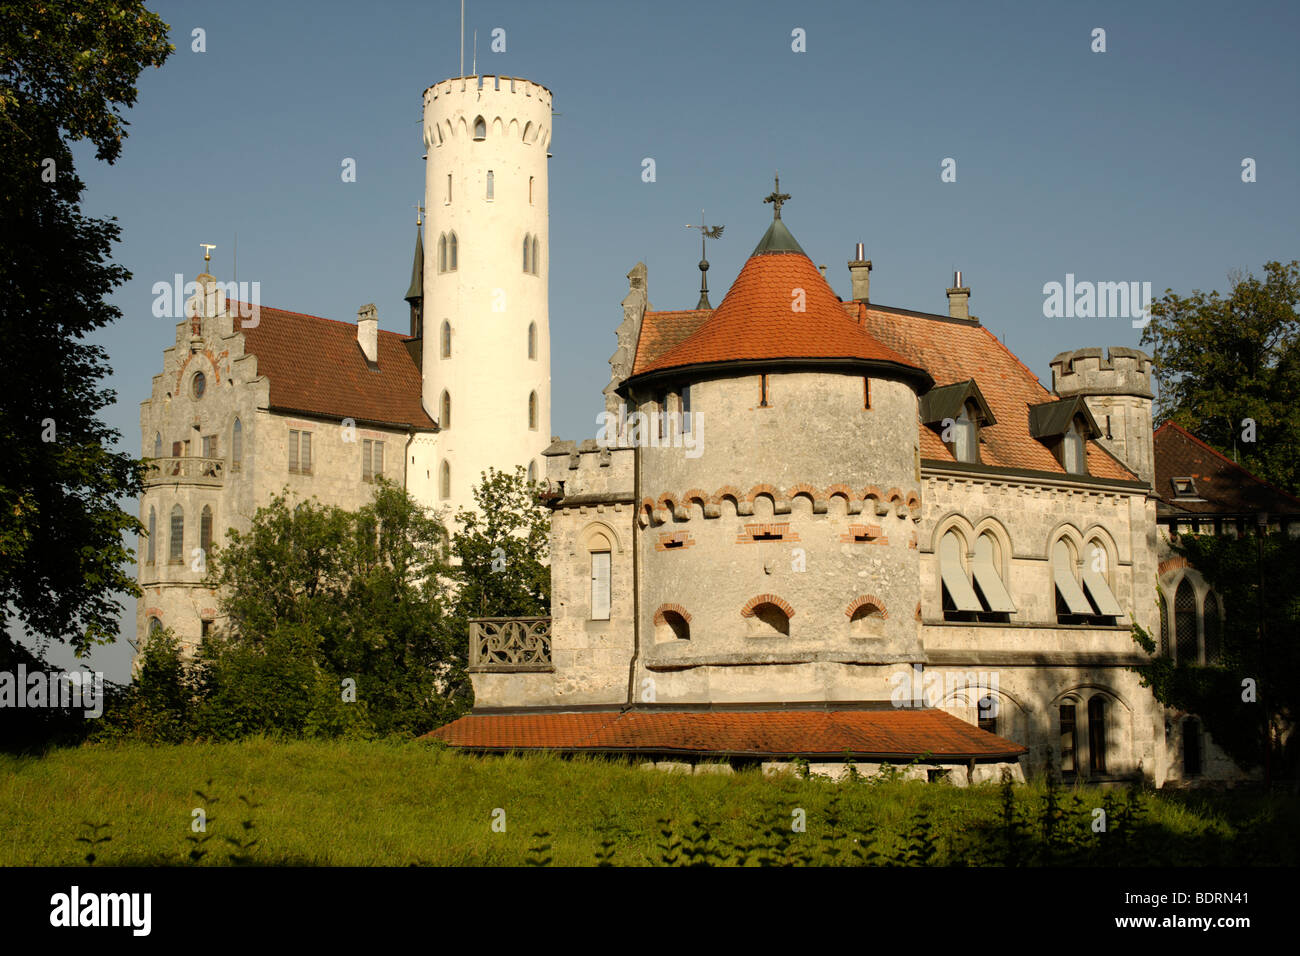 Lichtenstein Castle near Reutlingen, Swabian Alb, Baden-Wuerttemberg, Germany, Europe - Stock Image